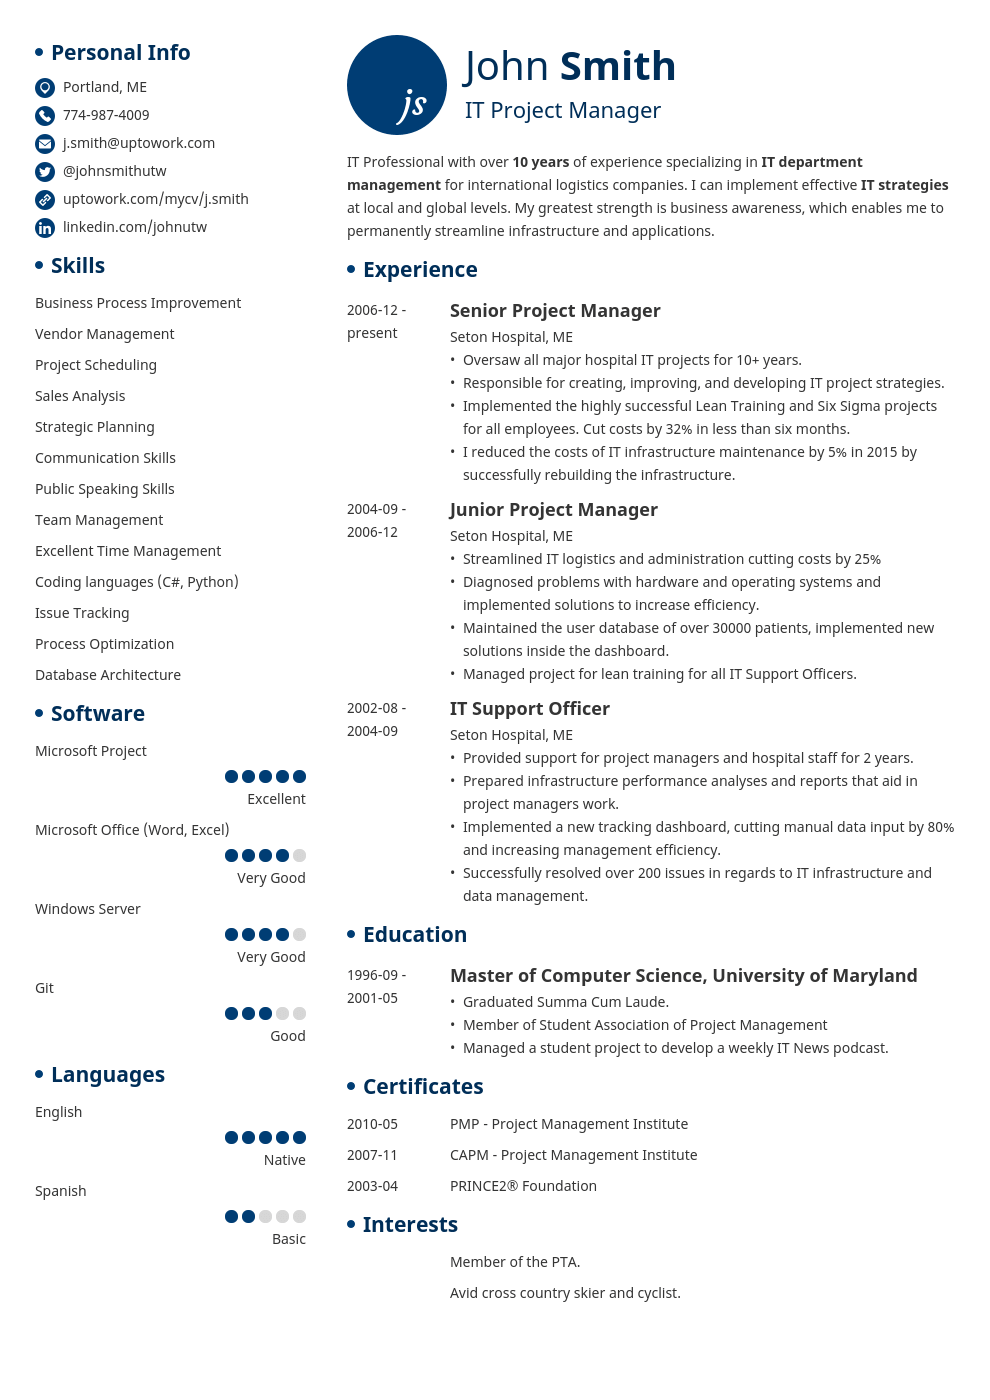 20 Resume Templates [Download] Create Your Resume in 5 Minutes!